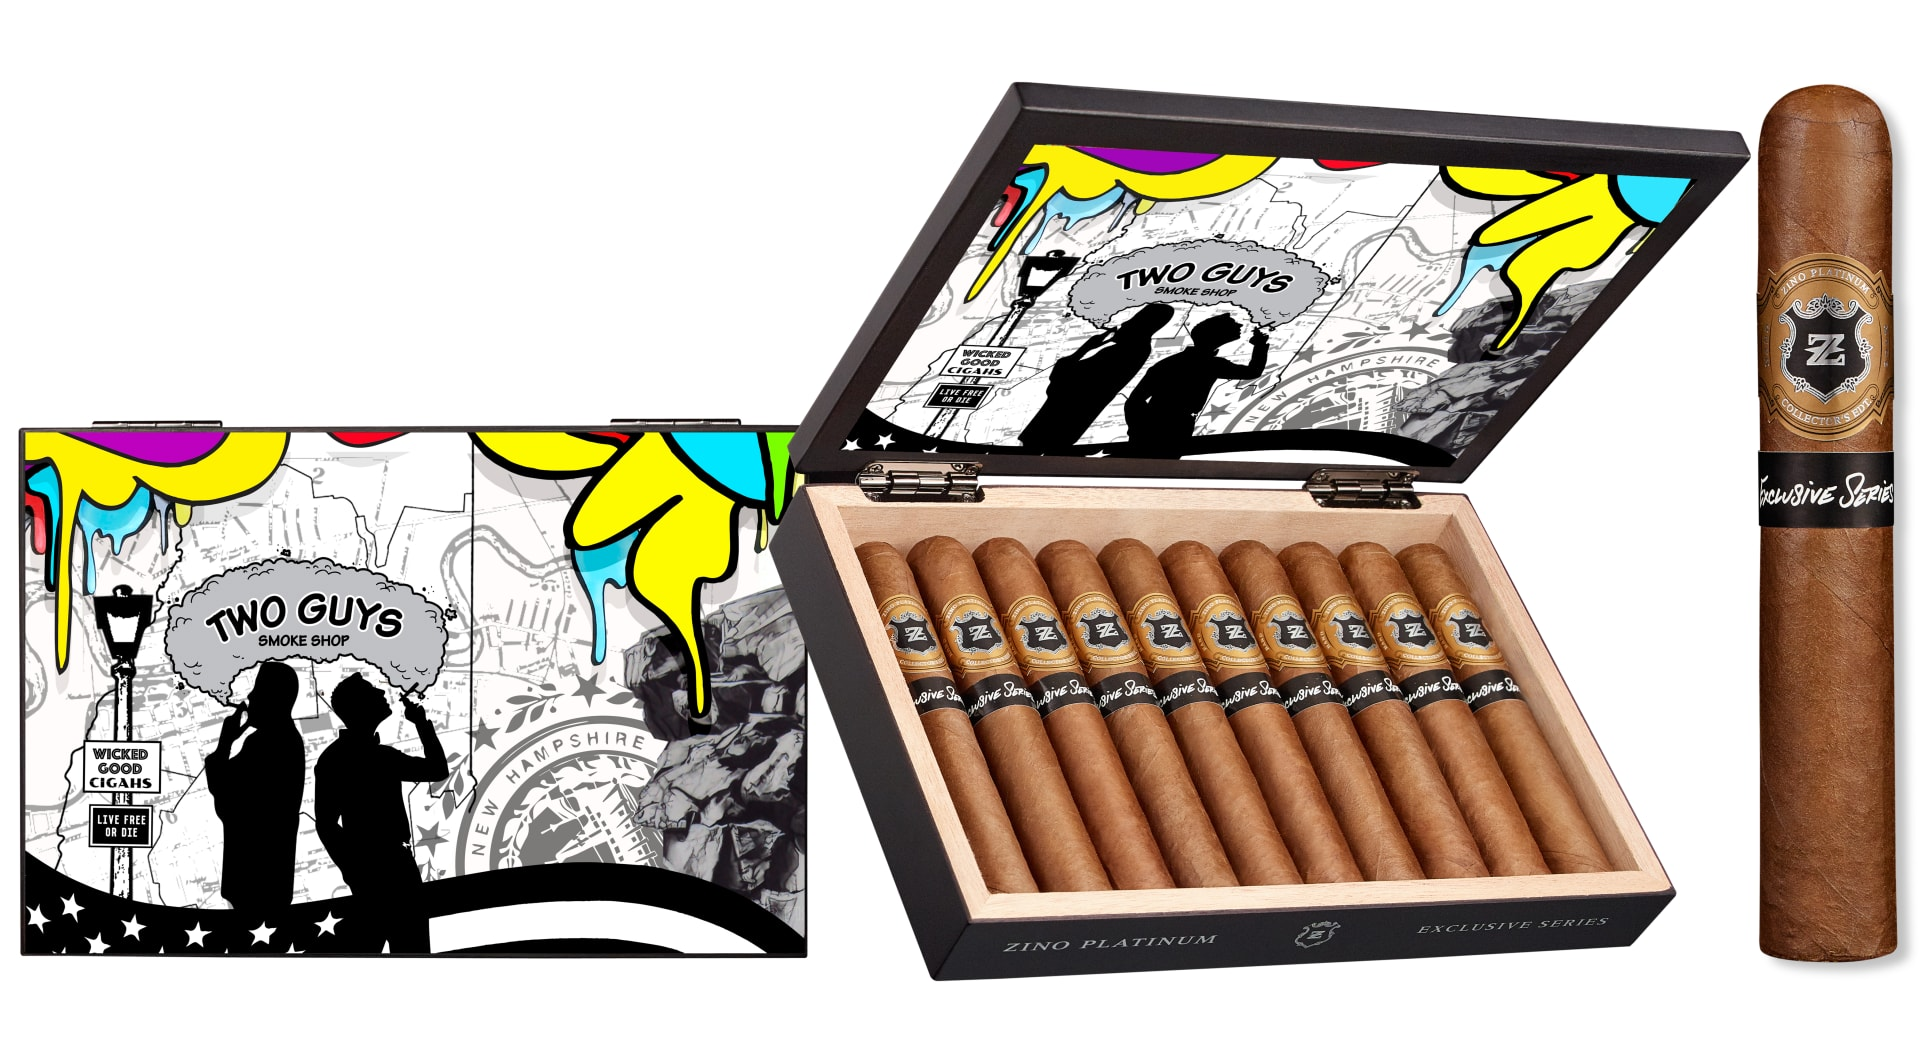 Cigar News: Two Guys Smoke Shop Announces Zino Platinum Exclusive Series Featured Image